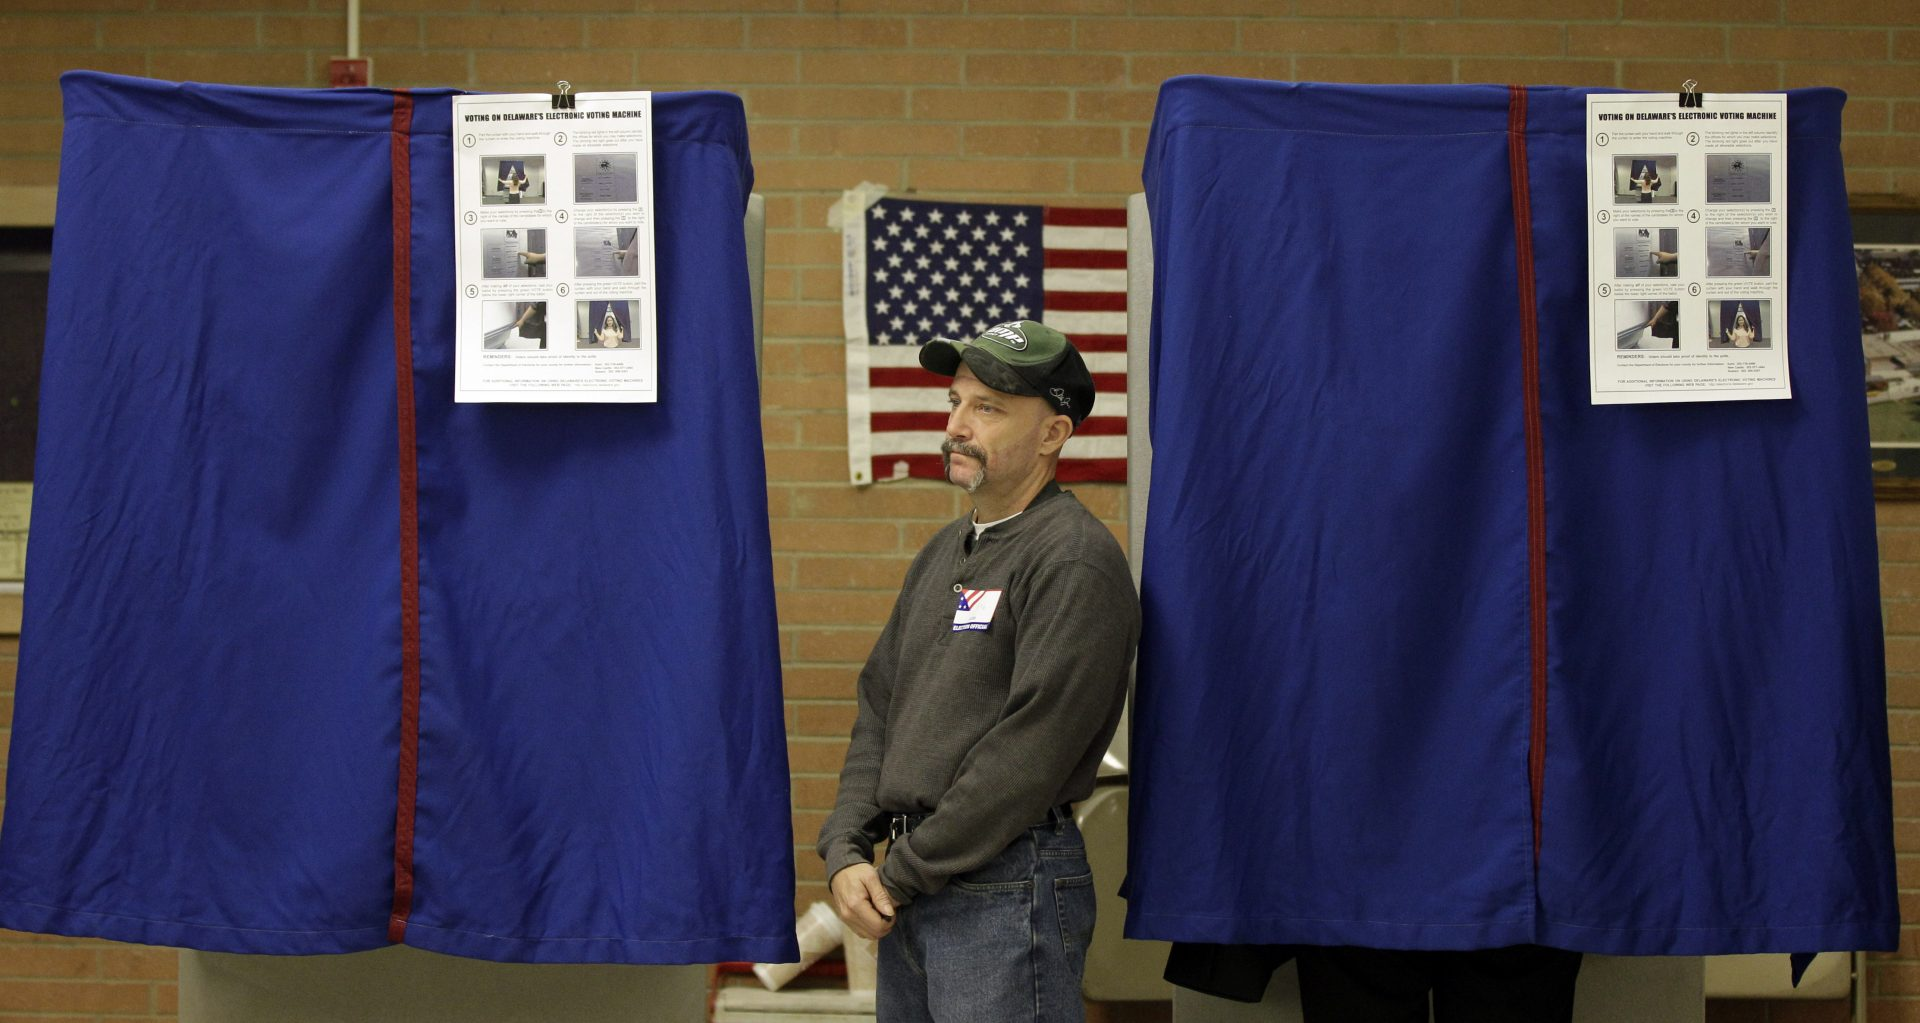 An election worker monitors a voting booth at a polling station in Wilmington, Del. Tuesday, Nov. 2, 2010.